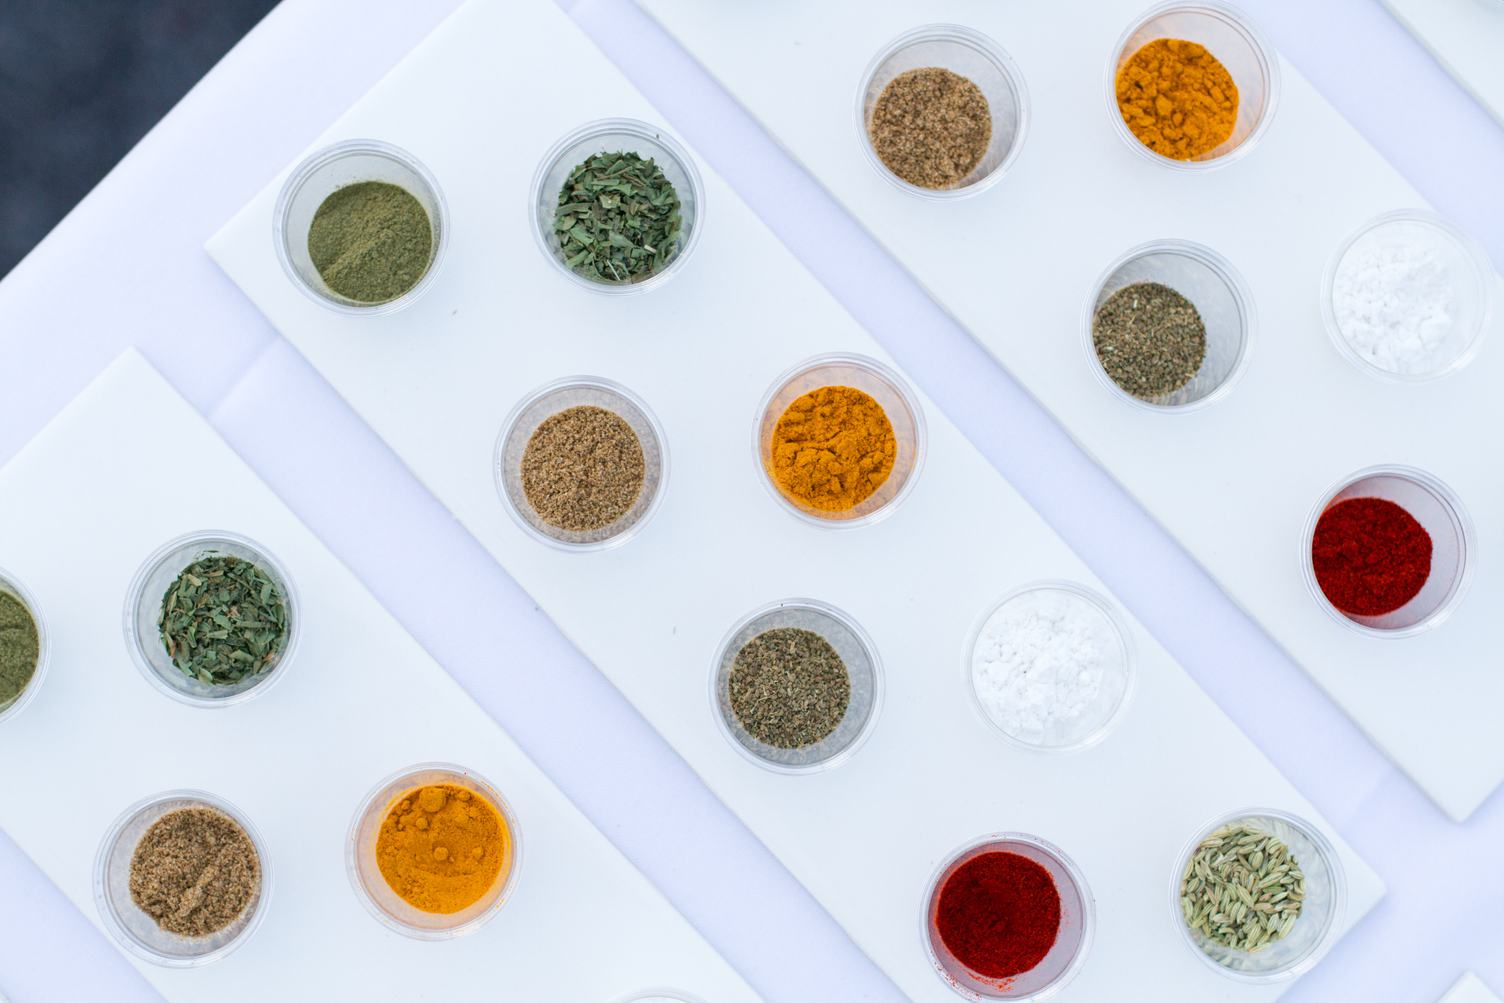 Spices in Small Containers